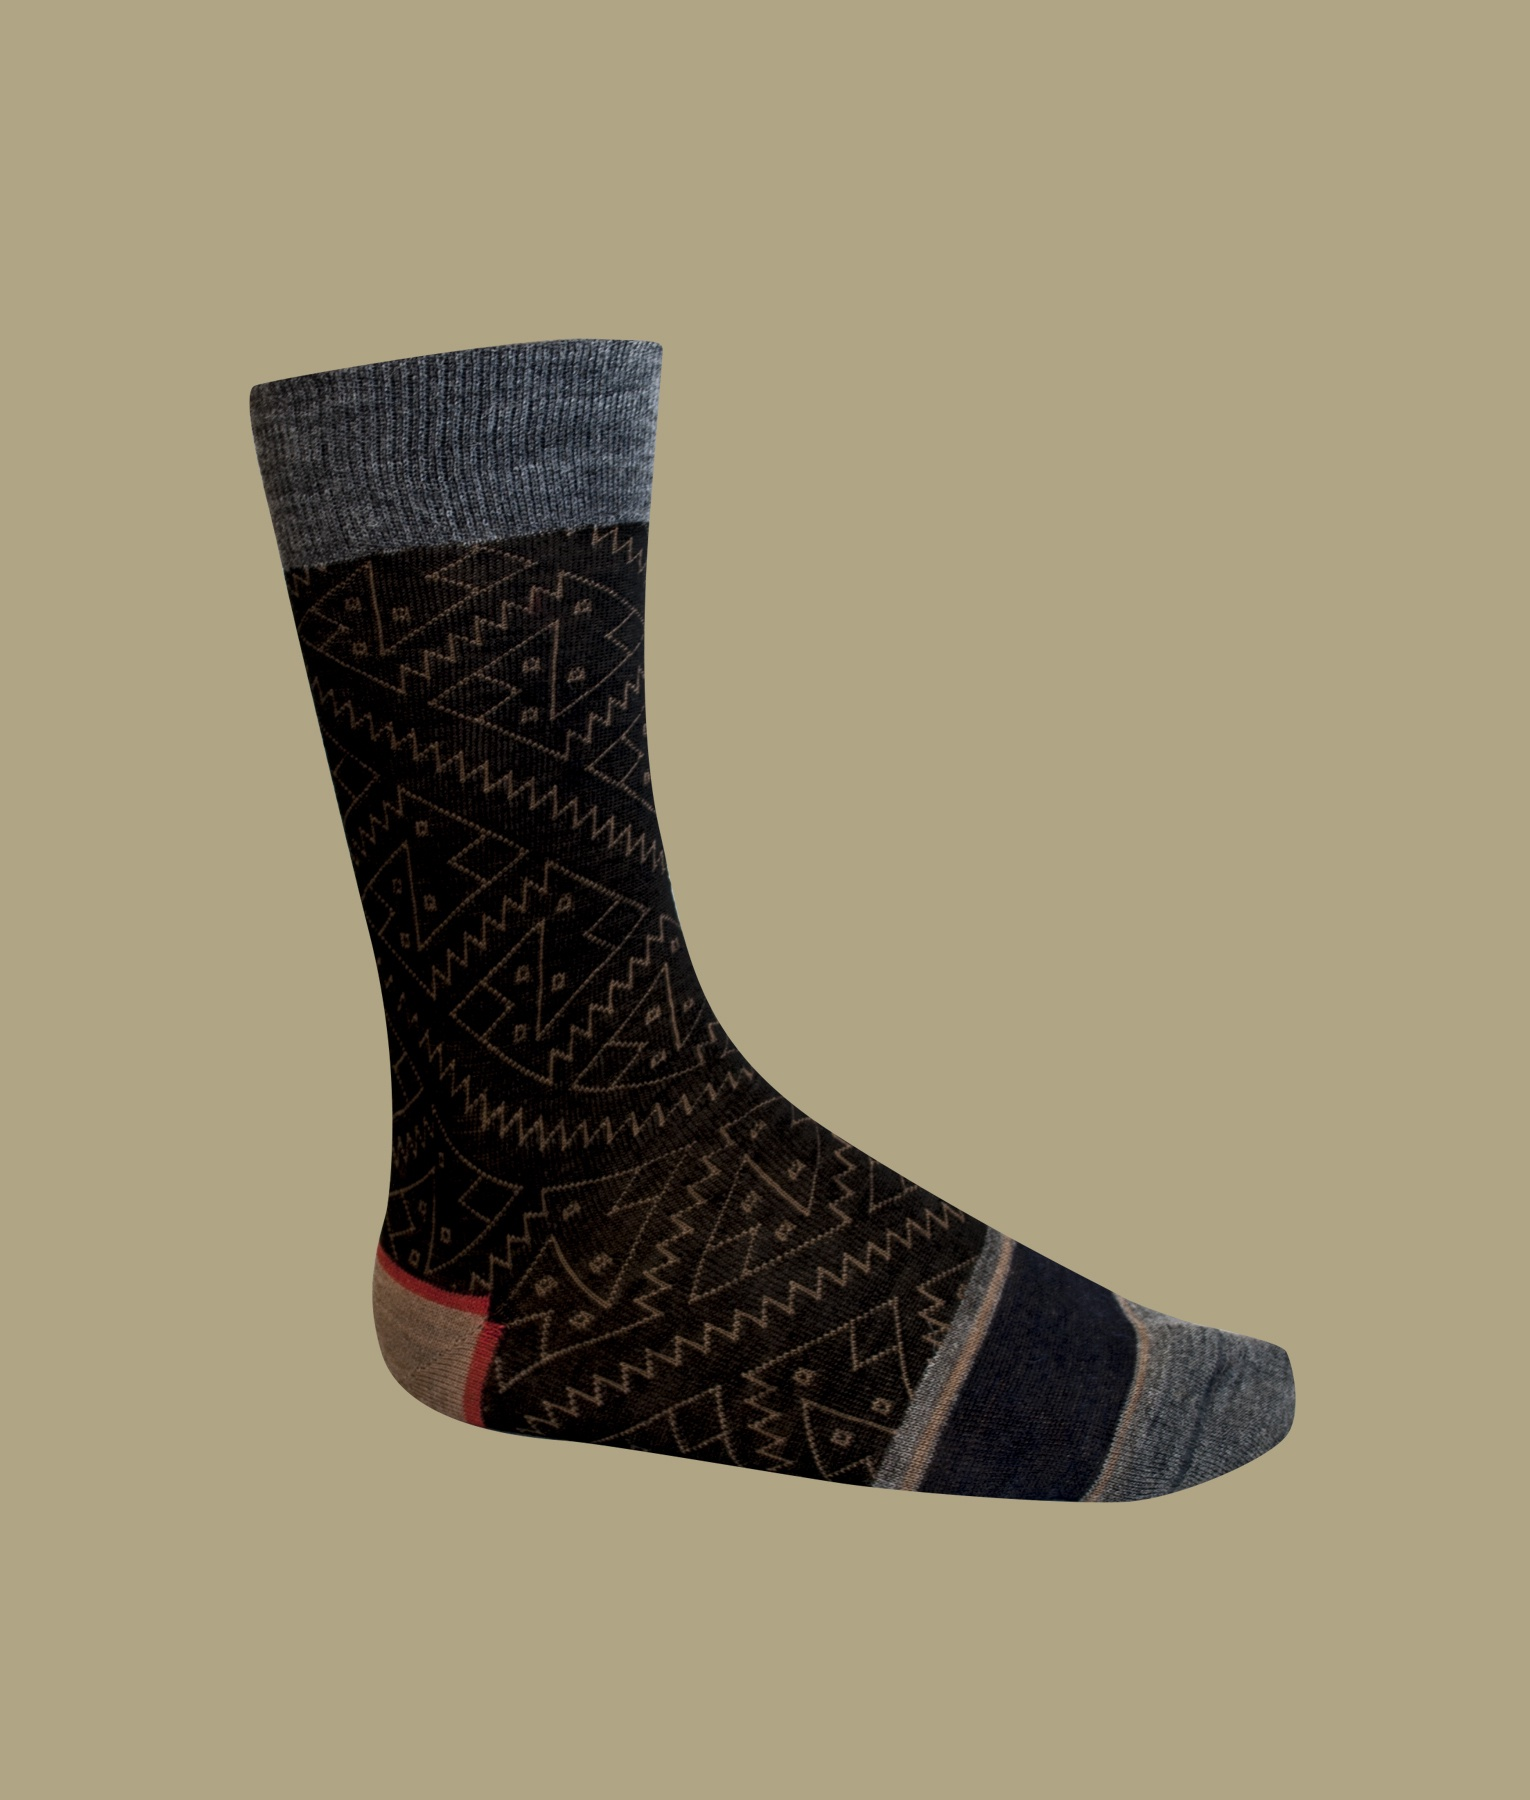 CHANCAY PATTERN MEN'S SOCKS